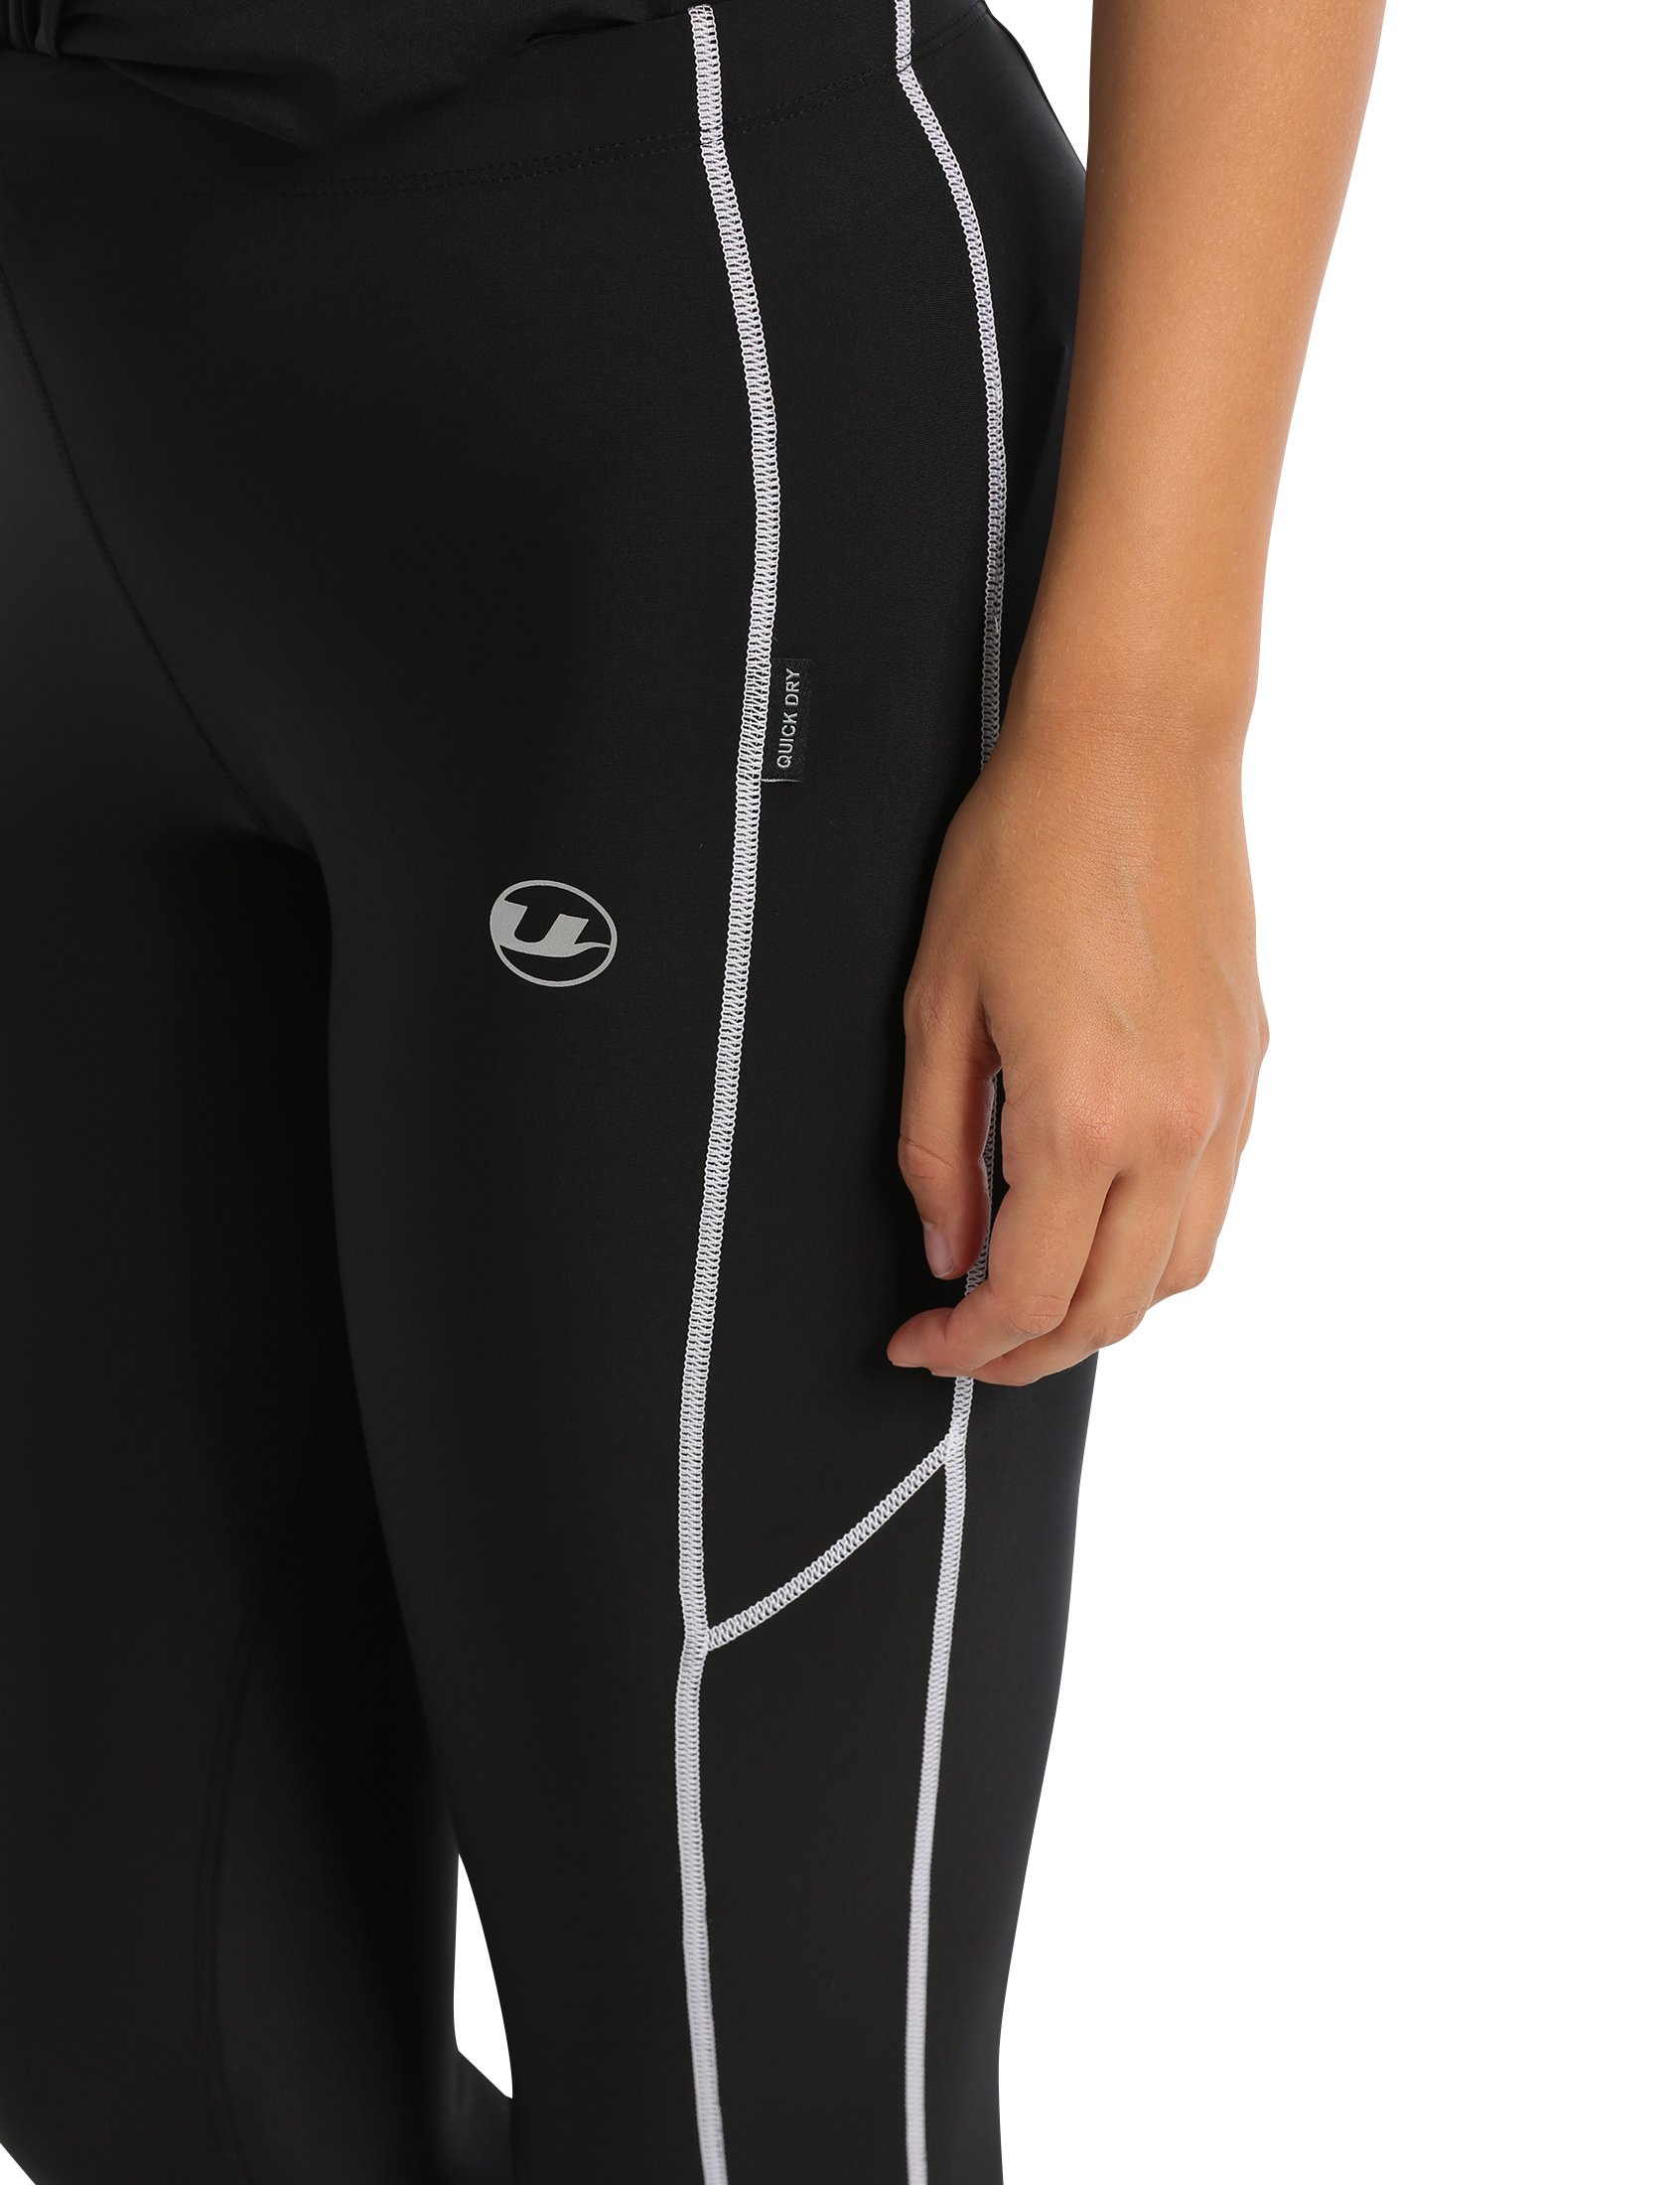 71TMU6 8VCL - Ultrasport Women's Running Pants Capri with Compression Effect & Quick-Dry-Function